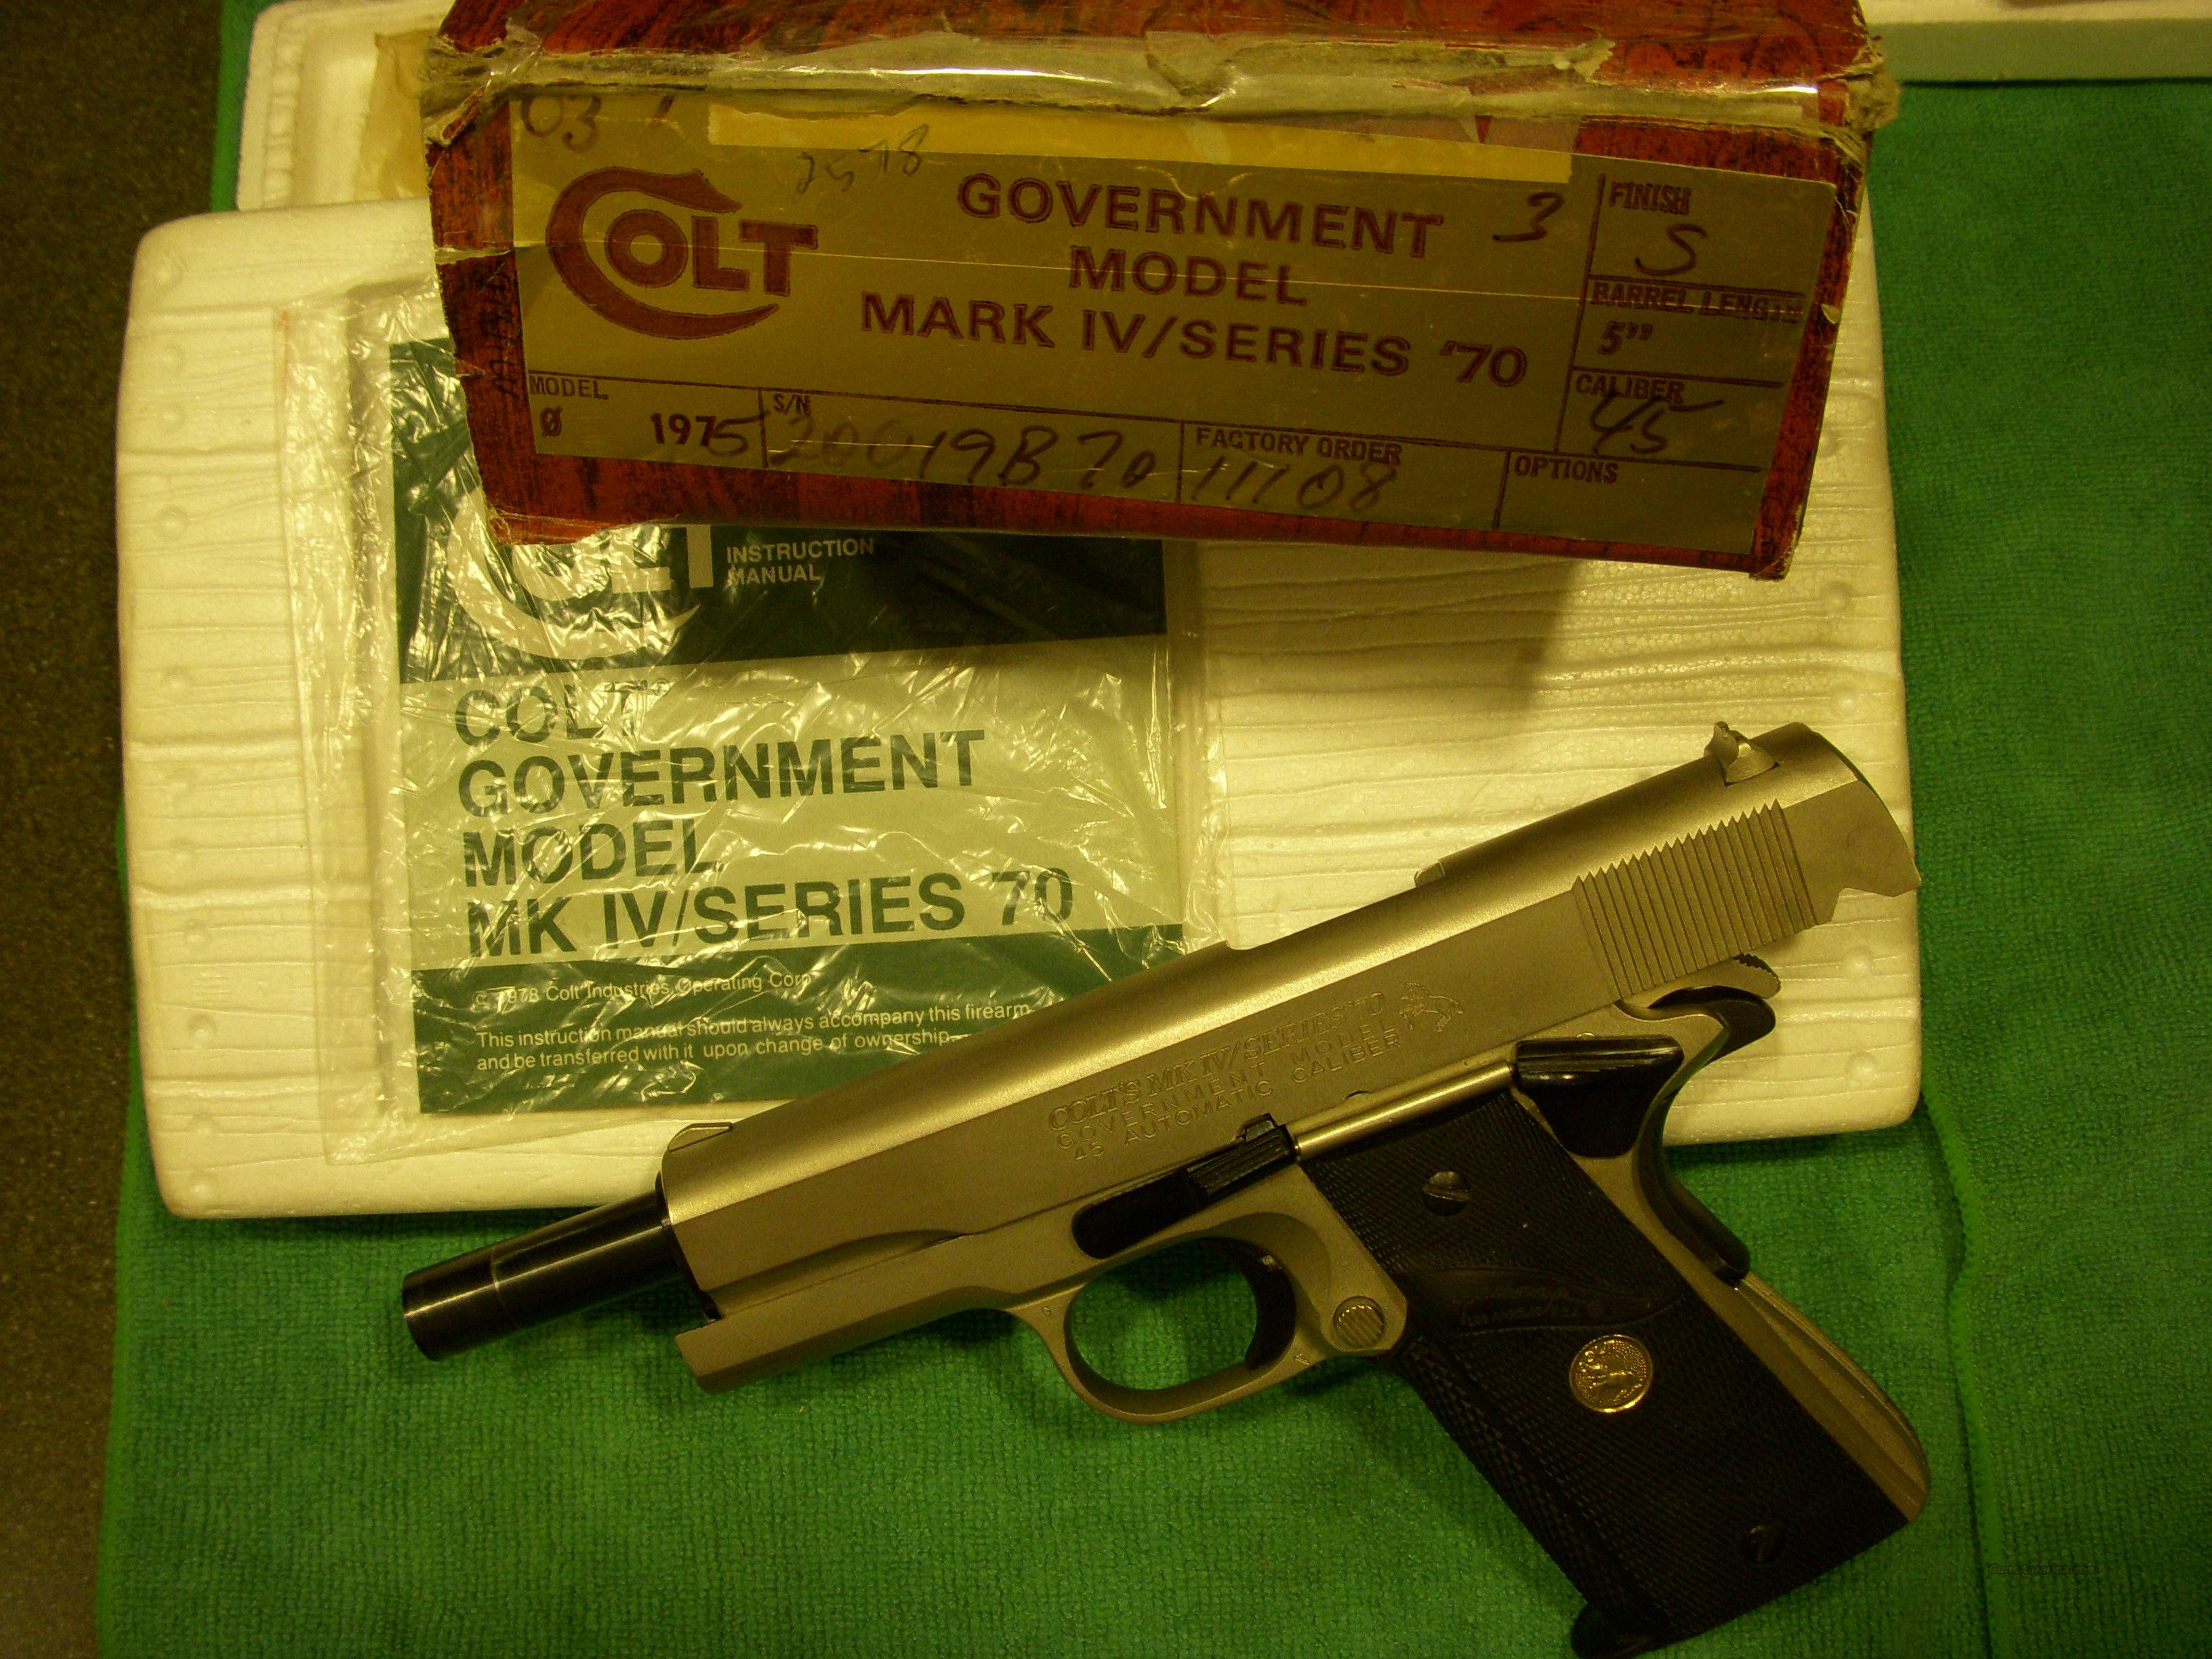 Colt Gov't Mk IV  70 Seies in box 45 Cal.  Guns > Pistols > Colt Automatic Pistols (1911 & Var)